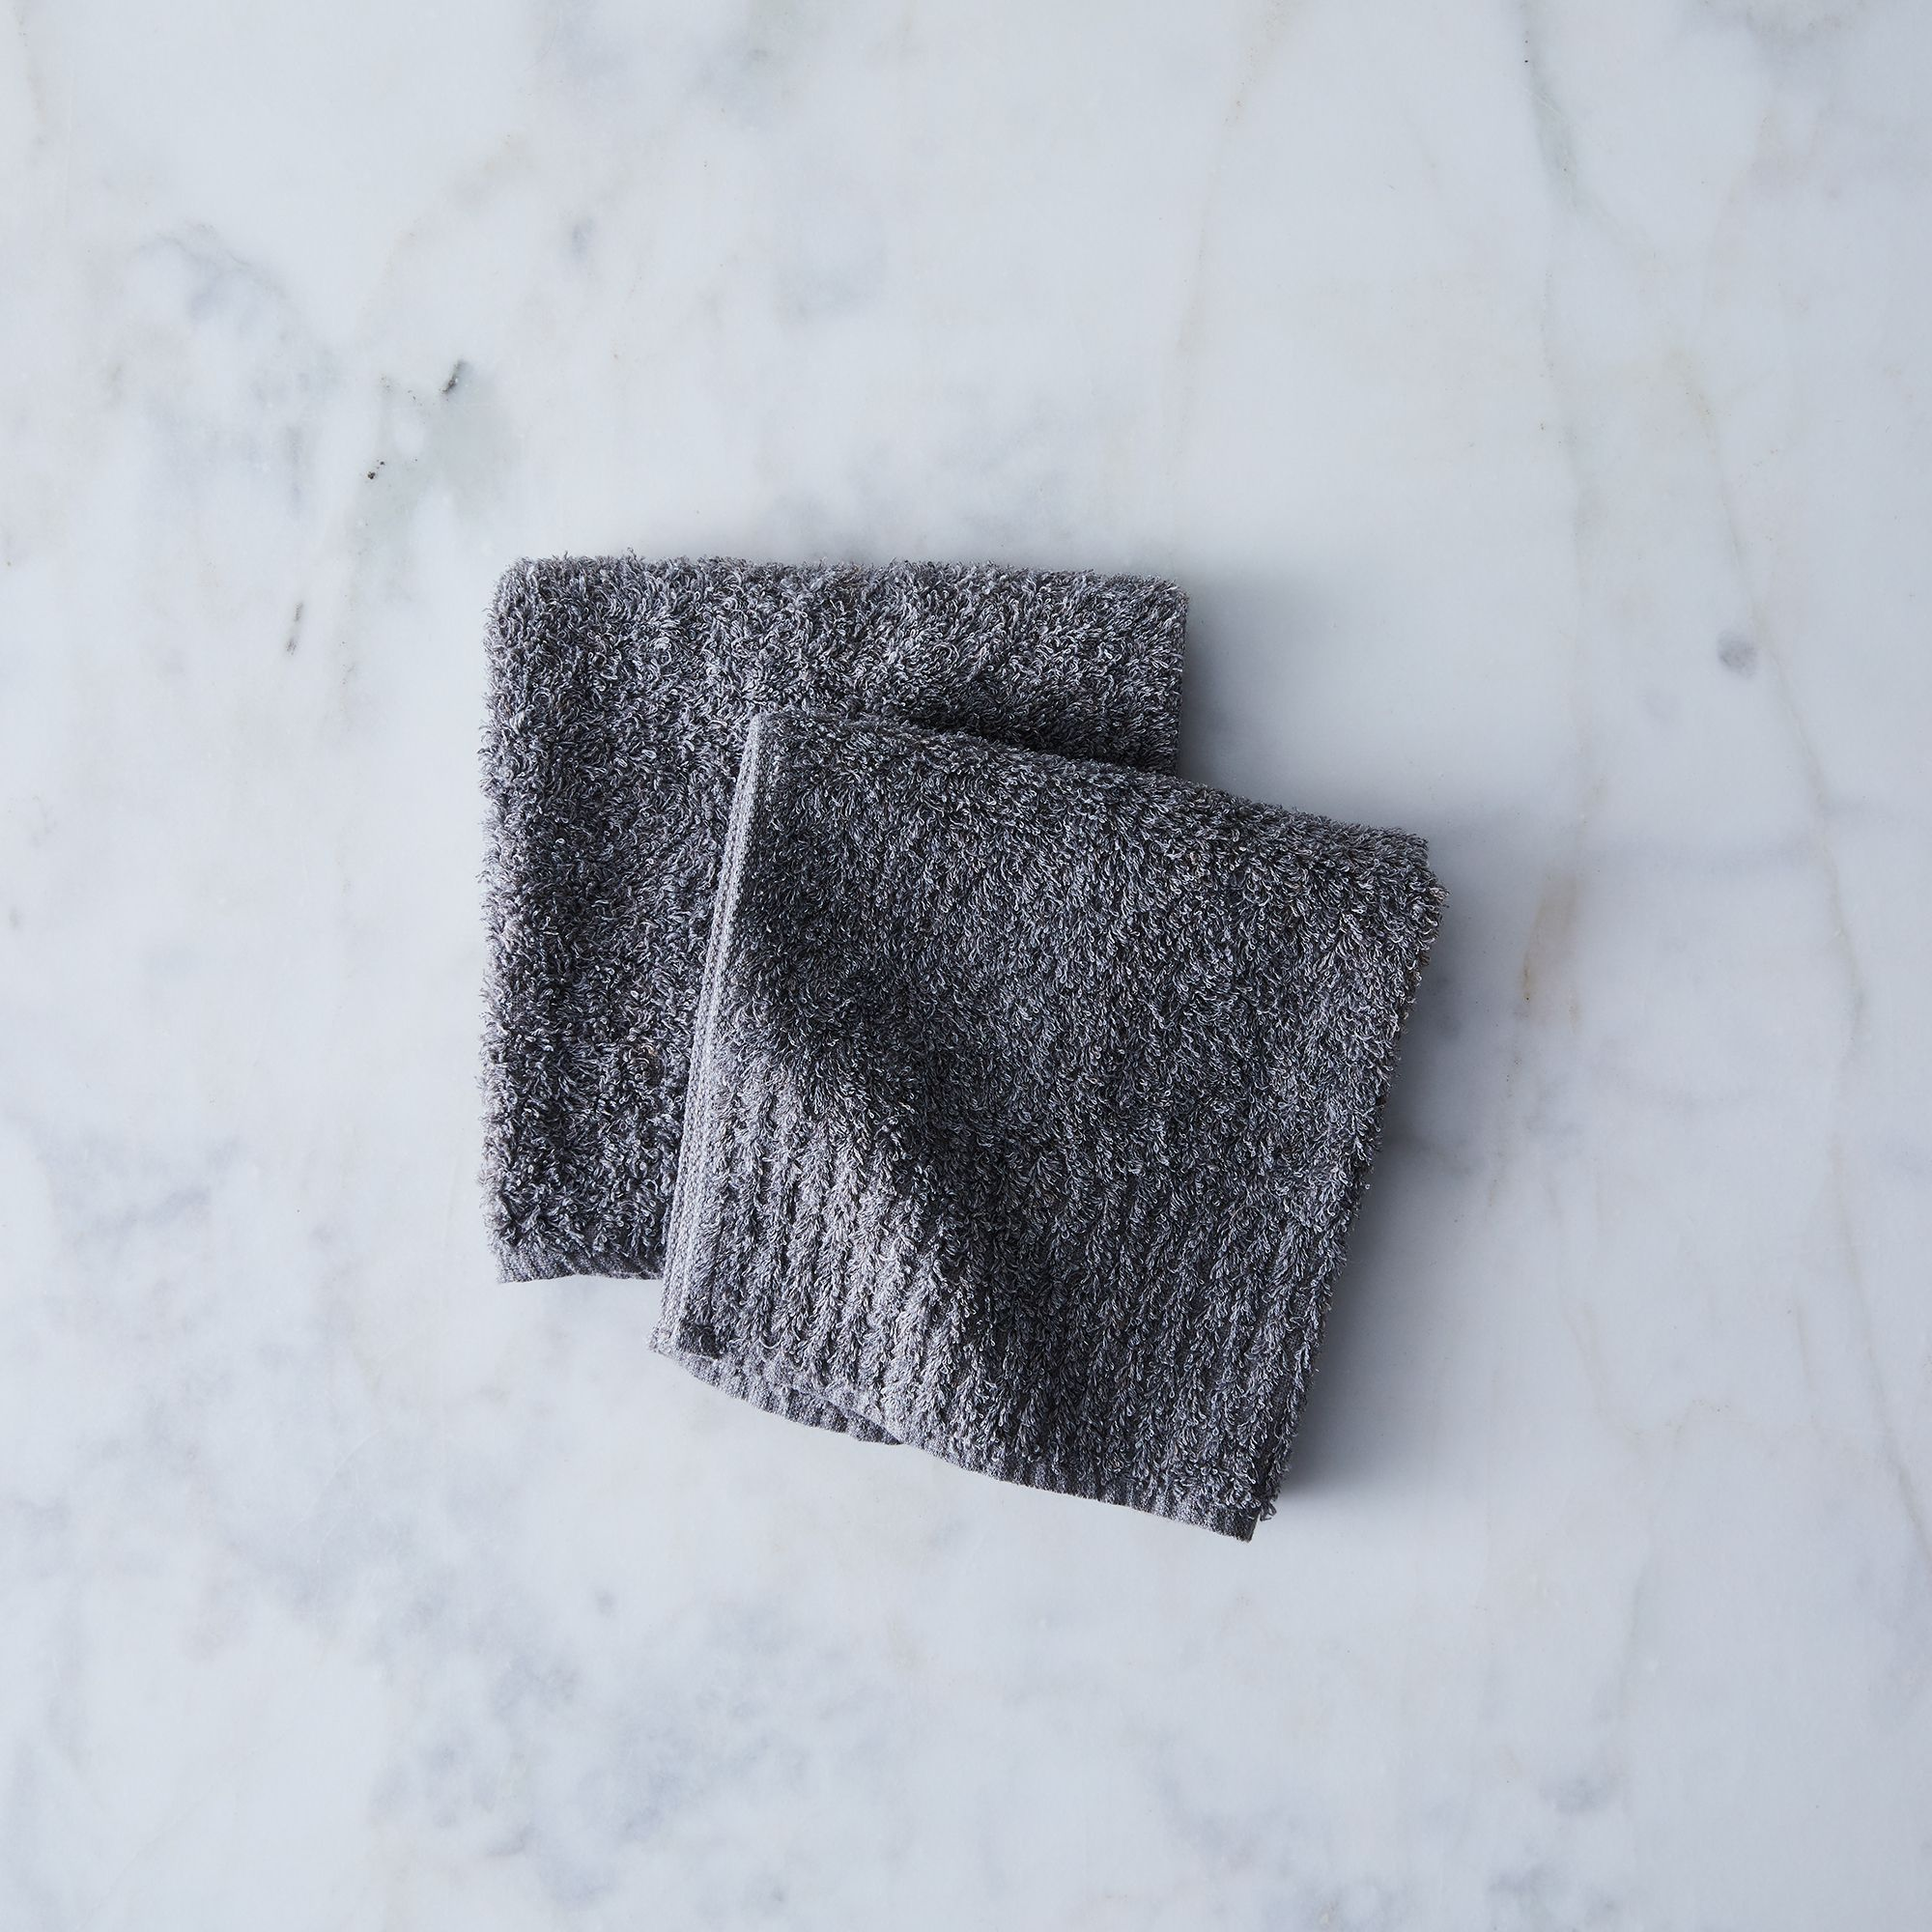 7b185e84 0d9c 4390 a62e b4f08a6e6f64  2017 1218 morihata vita terrycloth towels grey washcloths set of 2 silo ty mecham 006